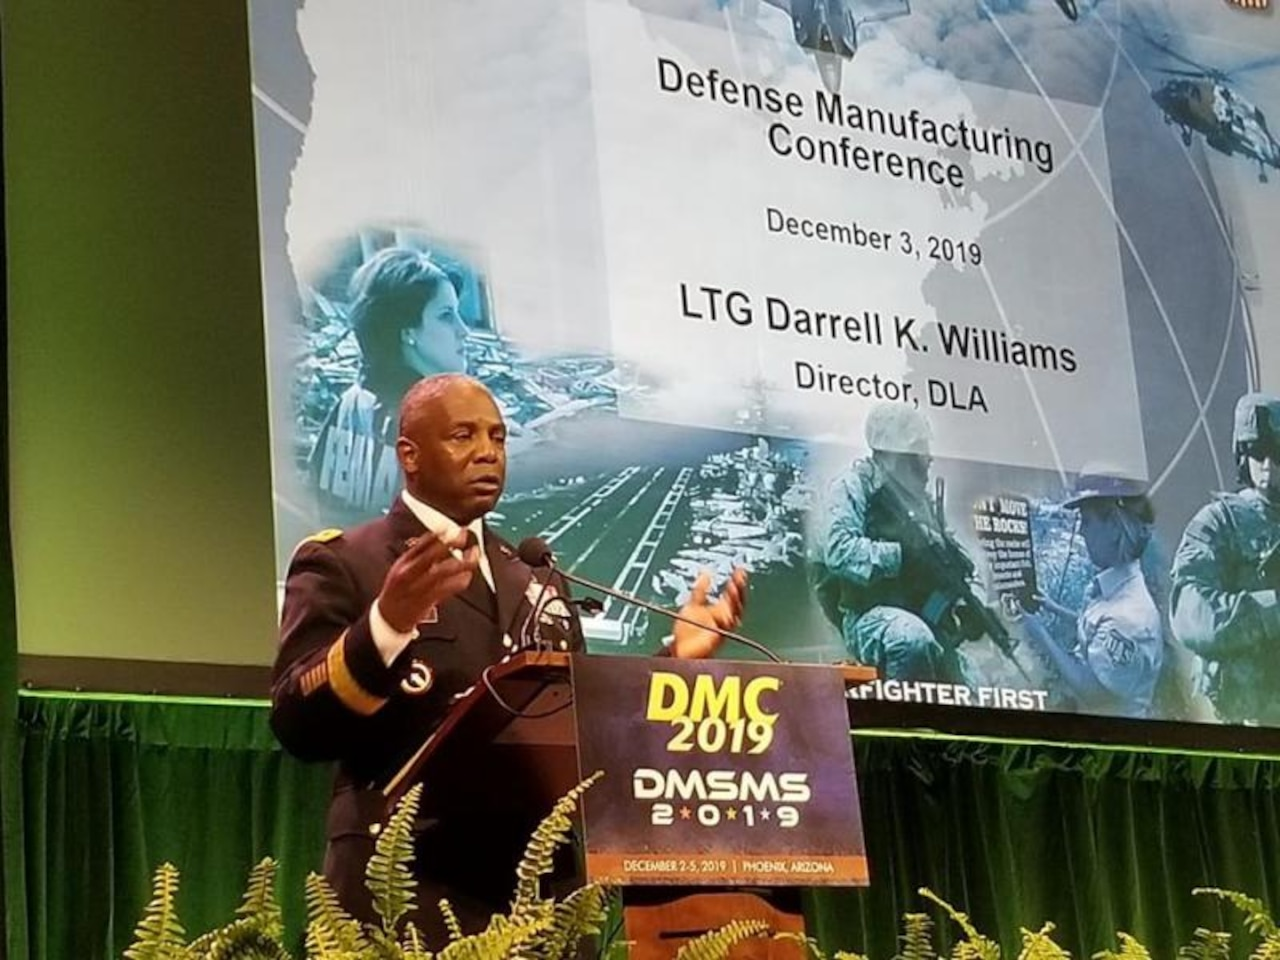 Man speaks at podium during the 2019 Defense Manufacturing Conference Dec. 3